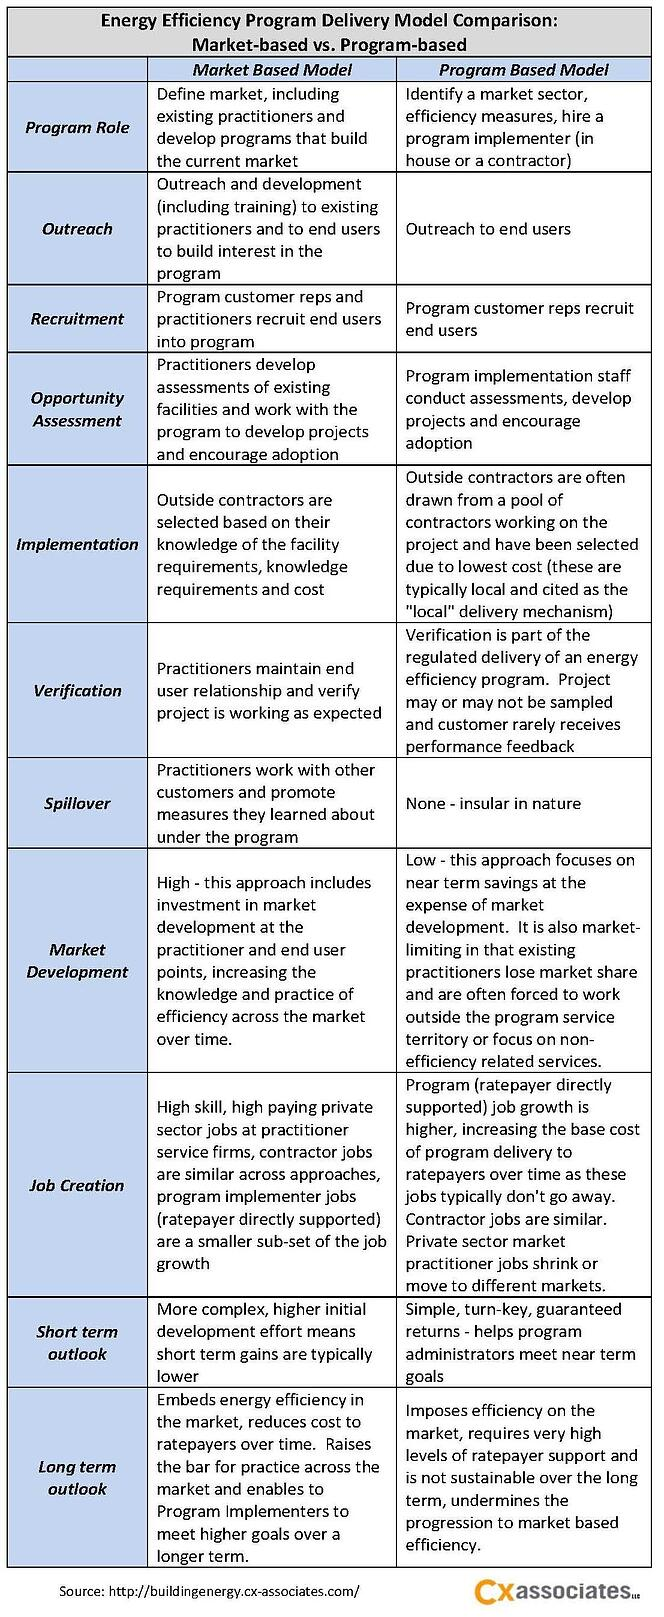 Energy Efficiency Program Delivery Model Comparison: Market‐based vs. Program‐based